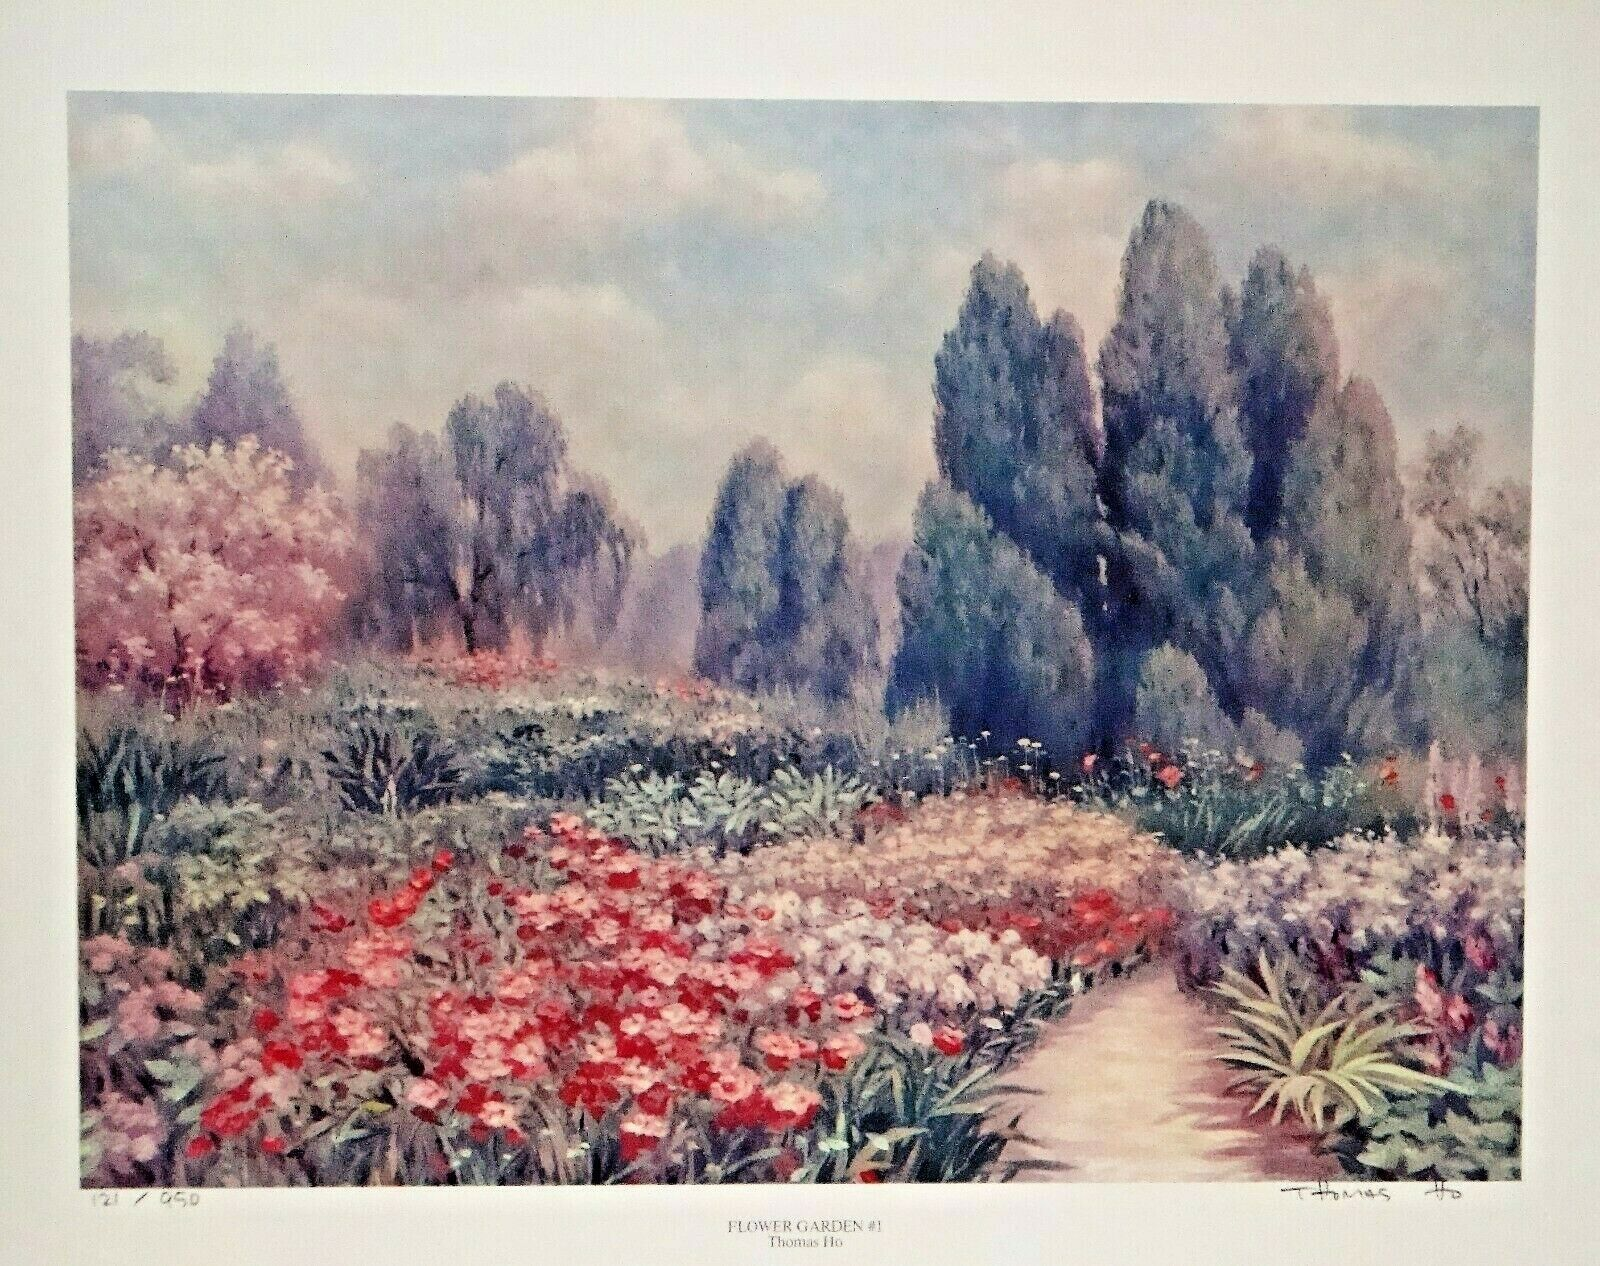 Flower Garden 1 121 / 950 By Thomas Ho - $39.99